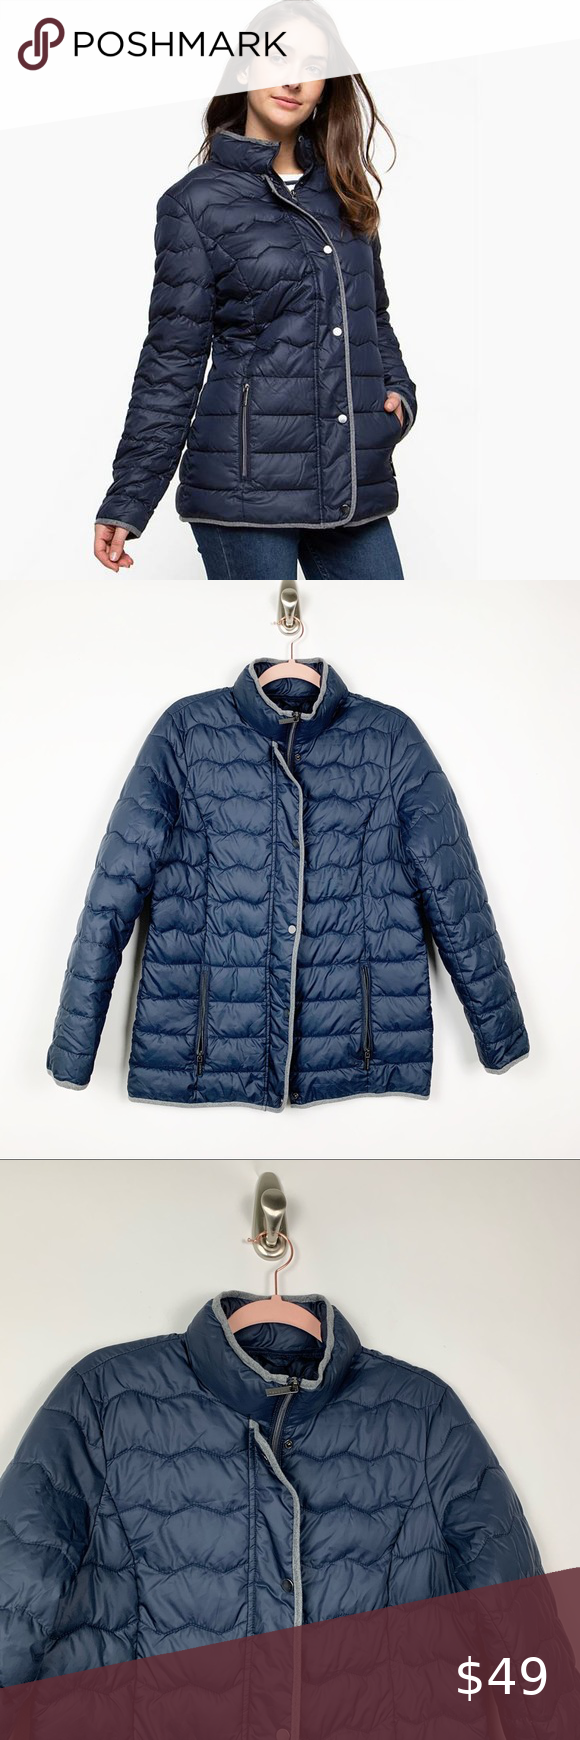 Newport Collection Navy Blue Puffer Jacket M 4859 Blue Puffer Jacket Clothes Design Fashion Trends [ 1740 x 580 Pixel ]